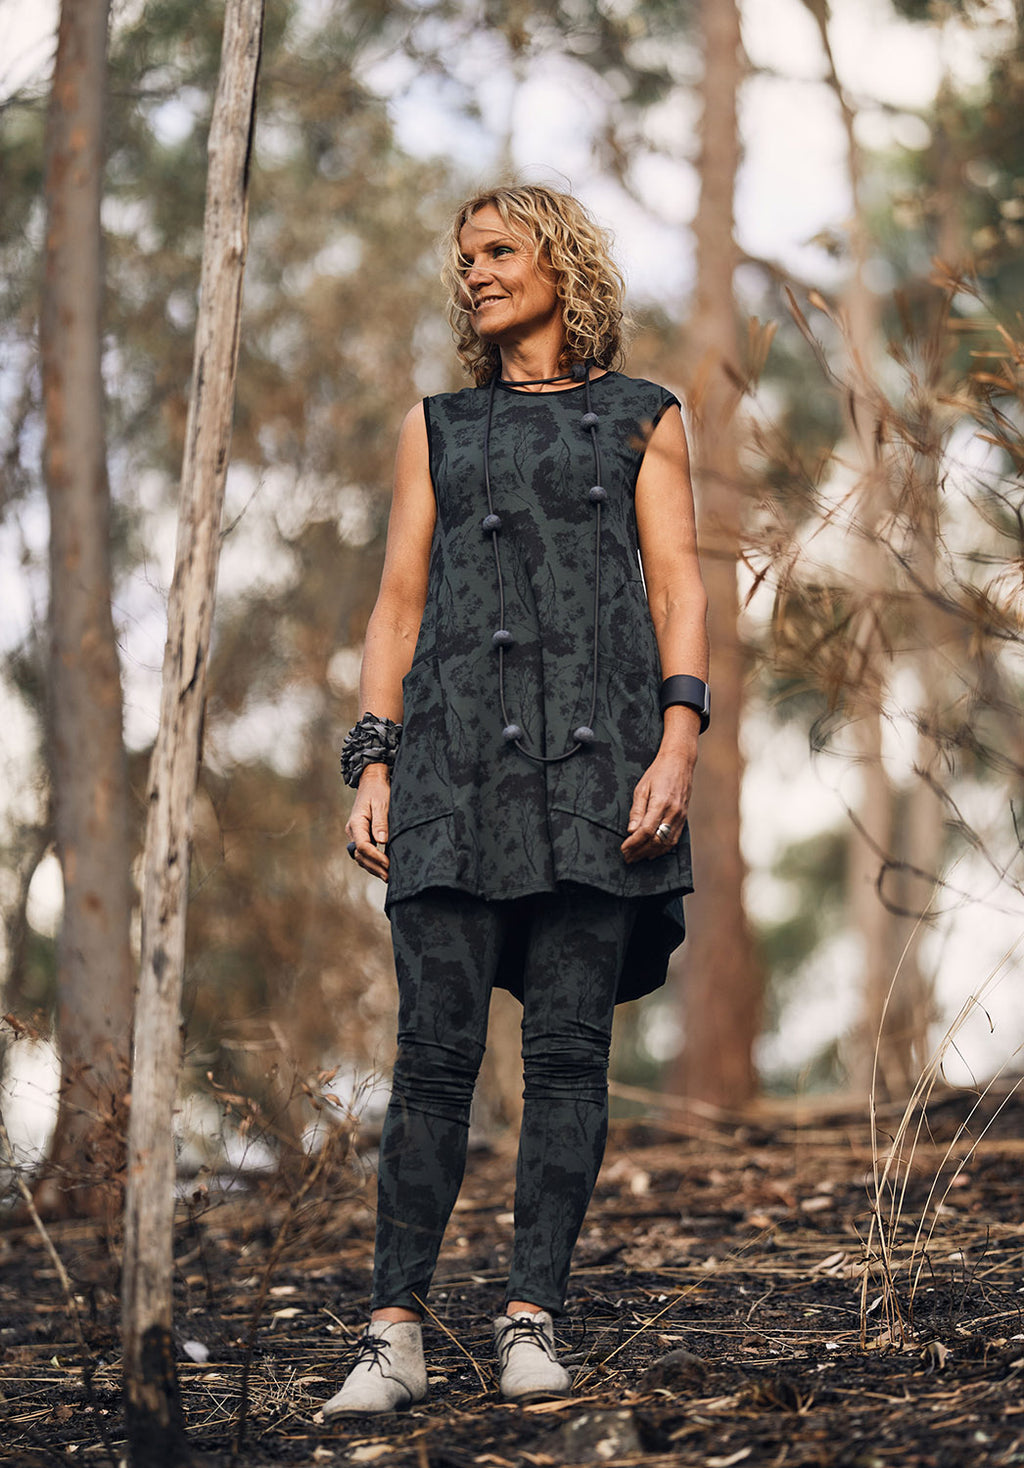 sustainable fashion online, ethical clothing australia, australian made leggings, leggings australia, shop bamboo clothes, australian made leggings online, shop bamboo leggings, australian fashion designer, ethical clothing australia, sustainable clothing online,